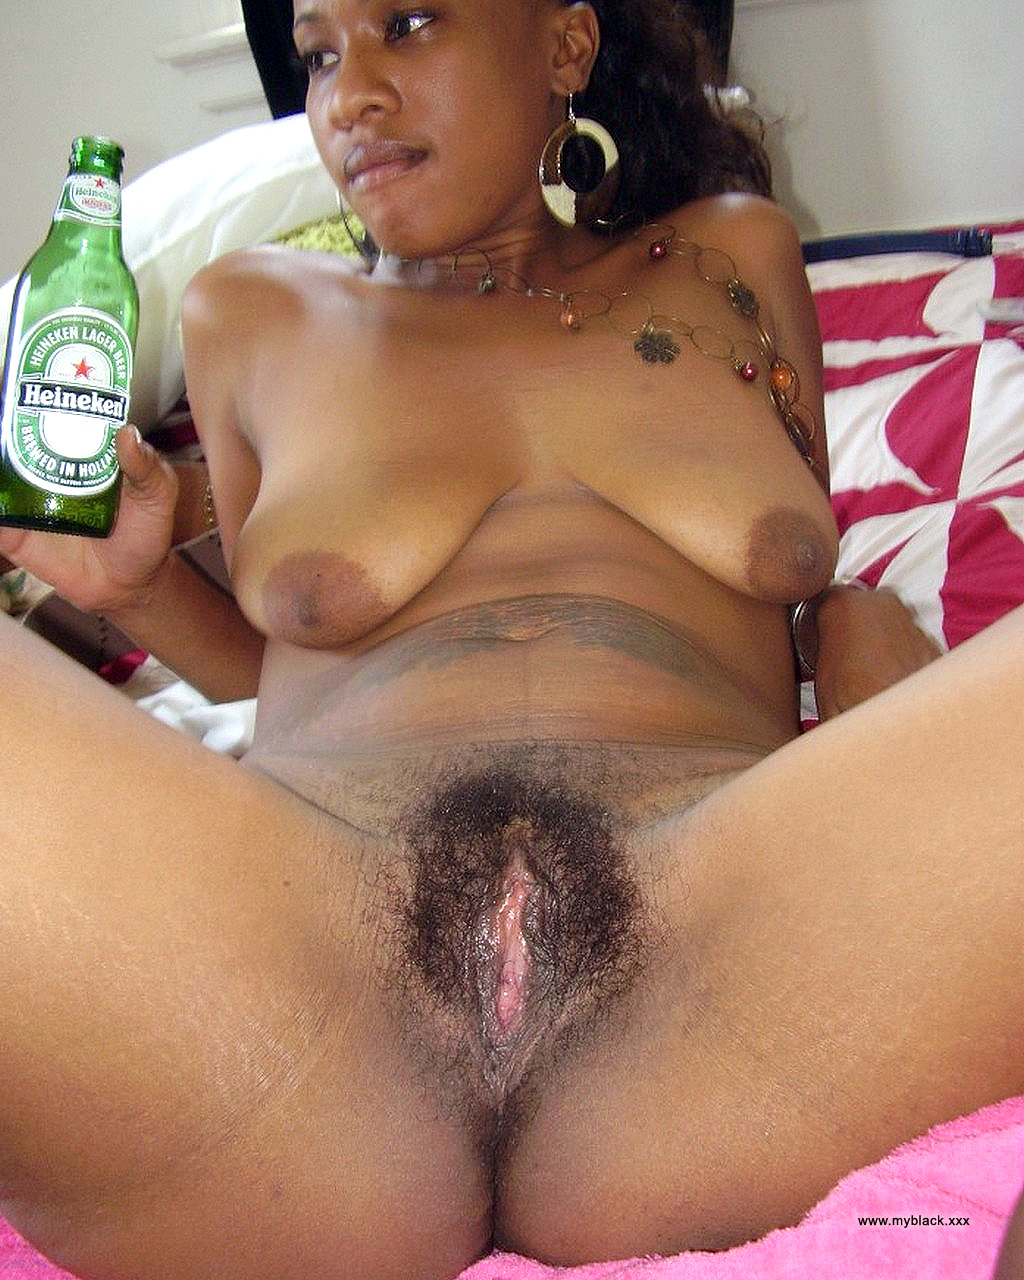 black amateurs naked - homemade black pussy pictures, naked and